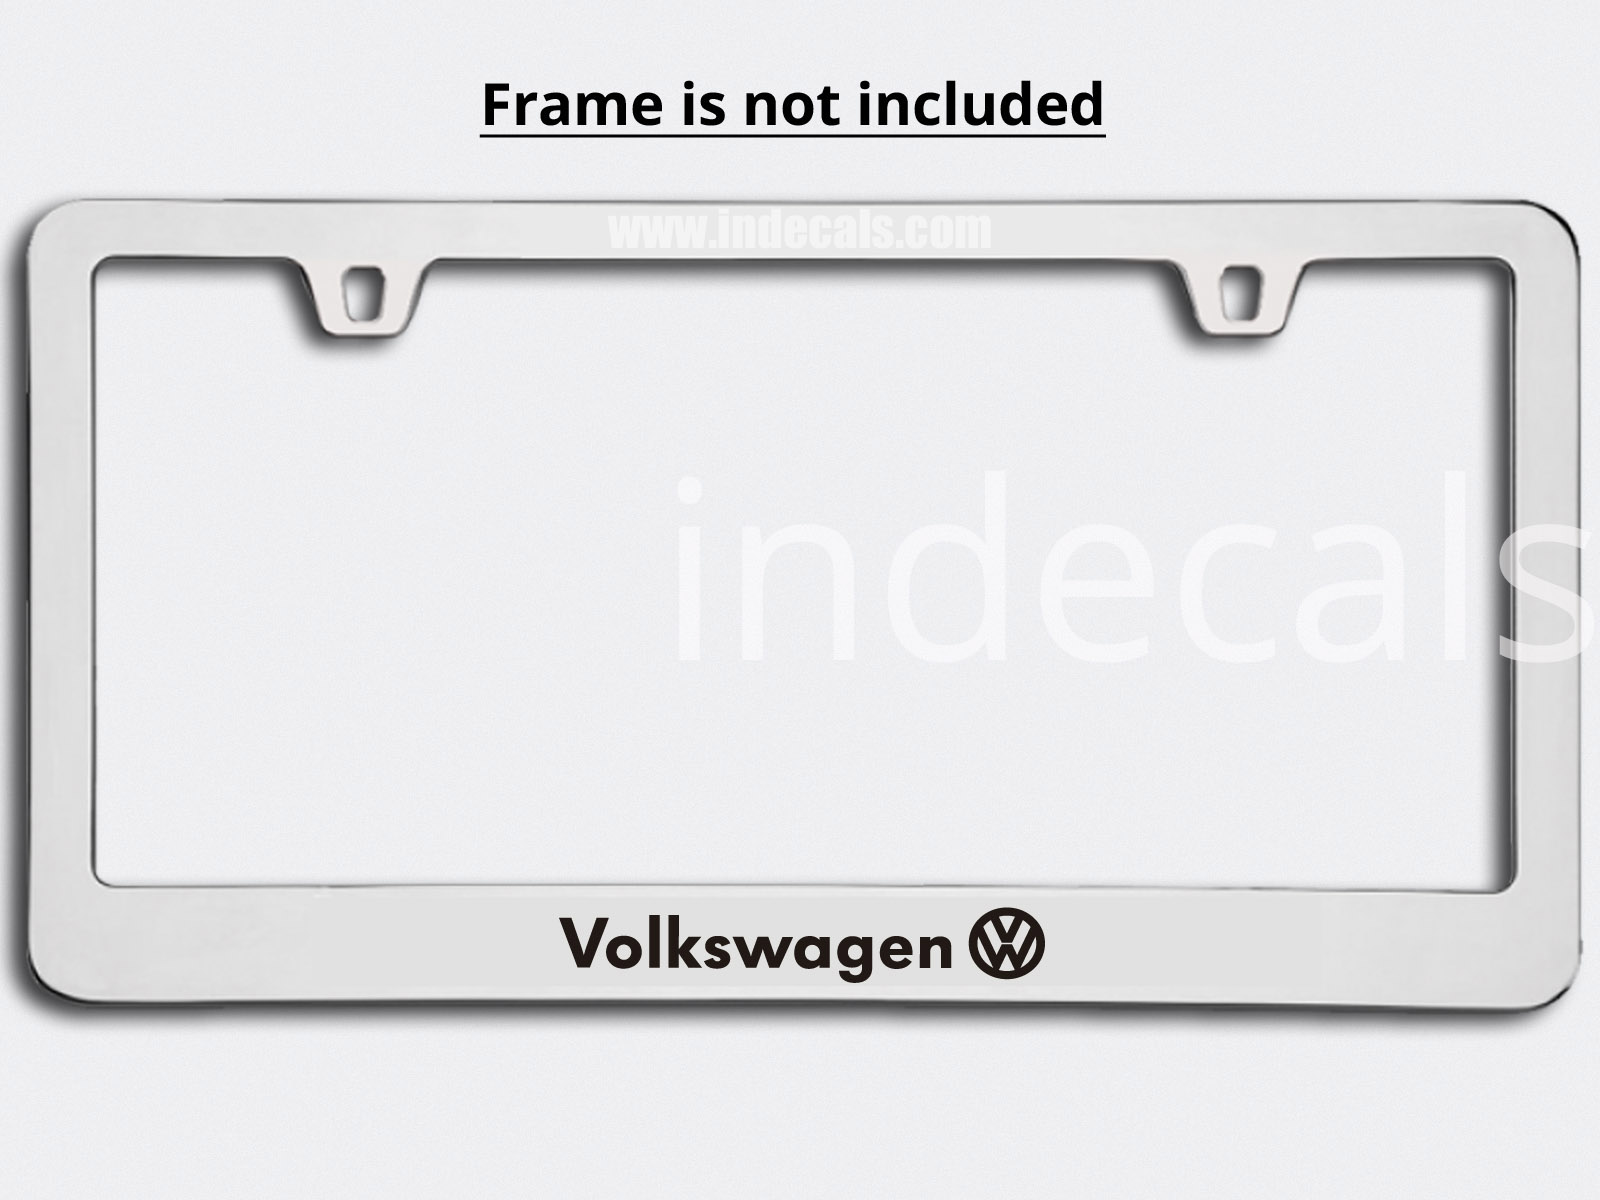 3 x Volkswagen Stickers for Plate Frame - Black